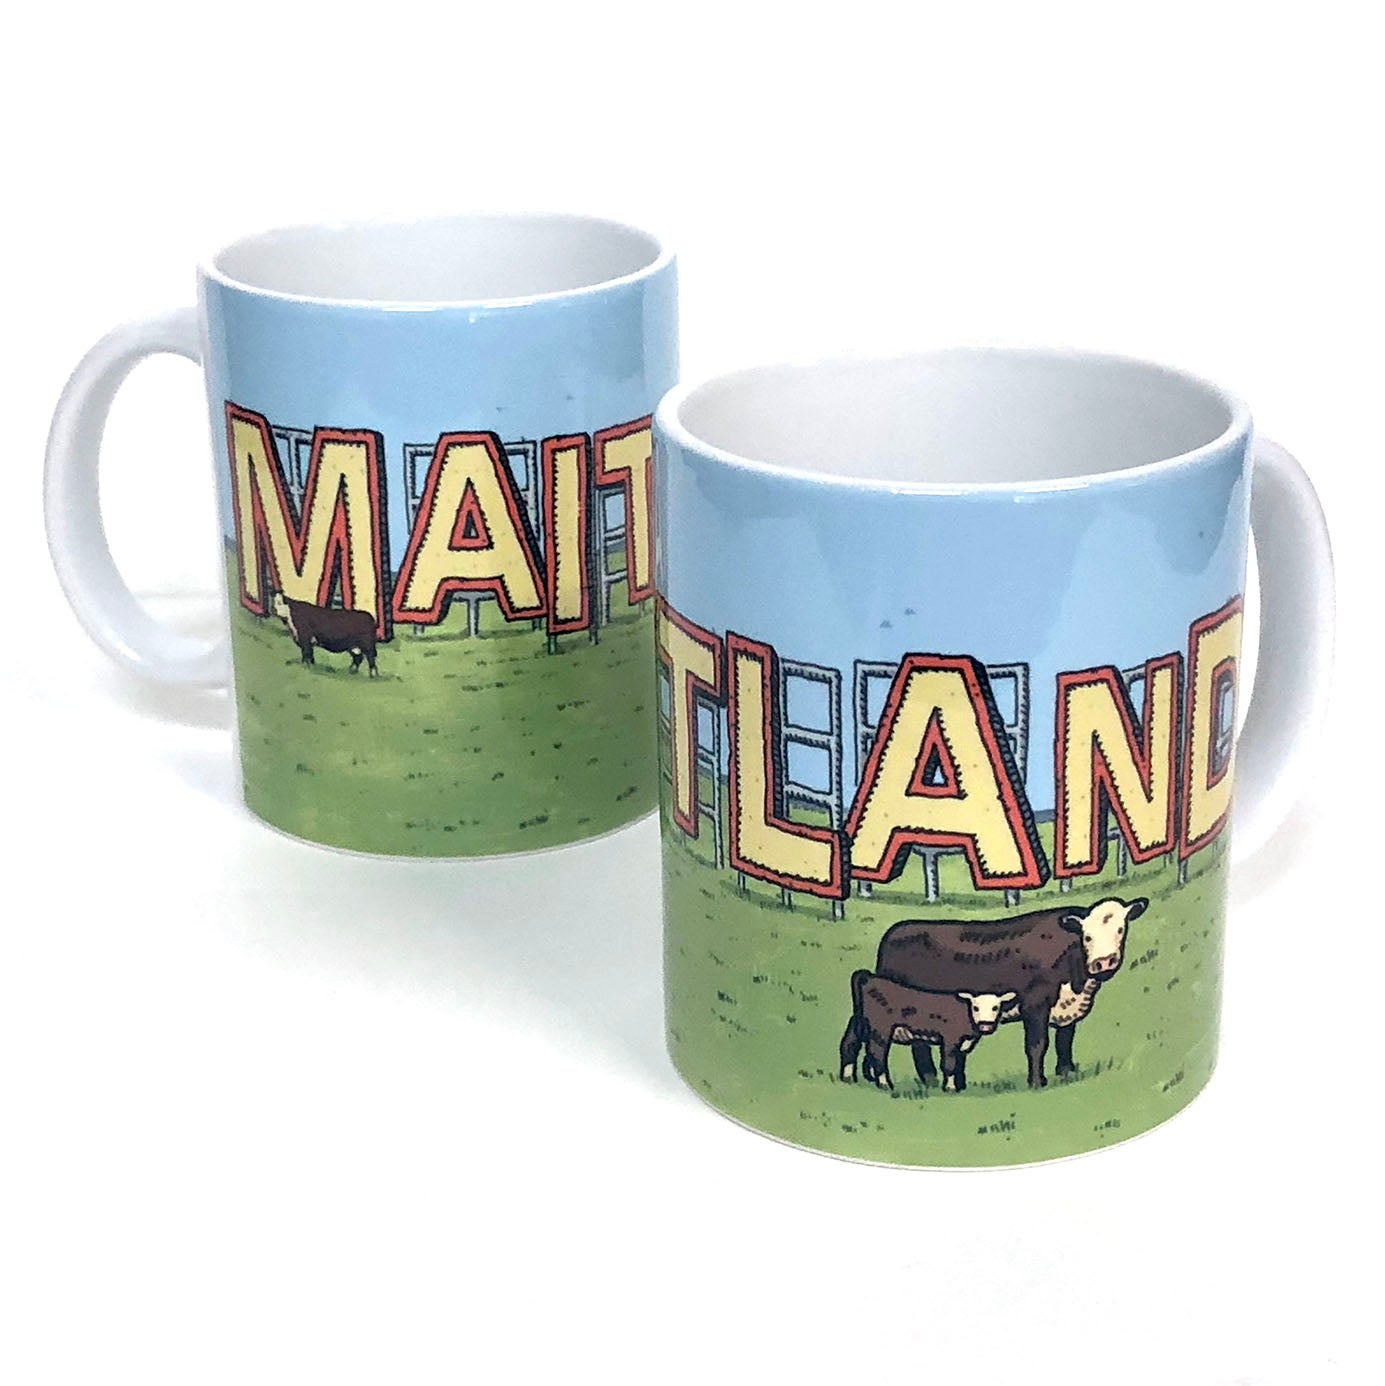 Image of The Maitland Mural Mug